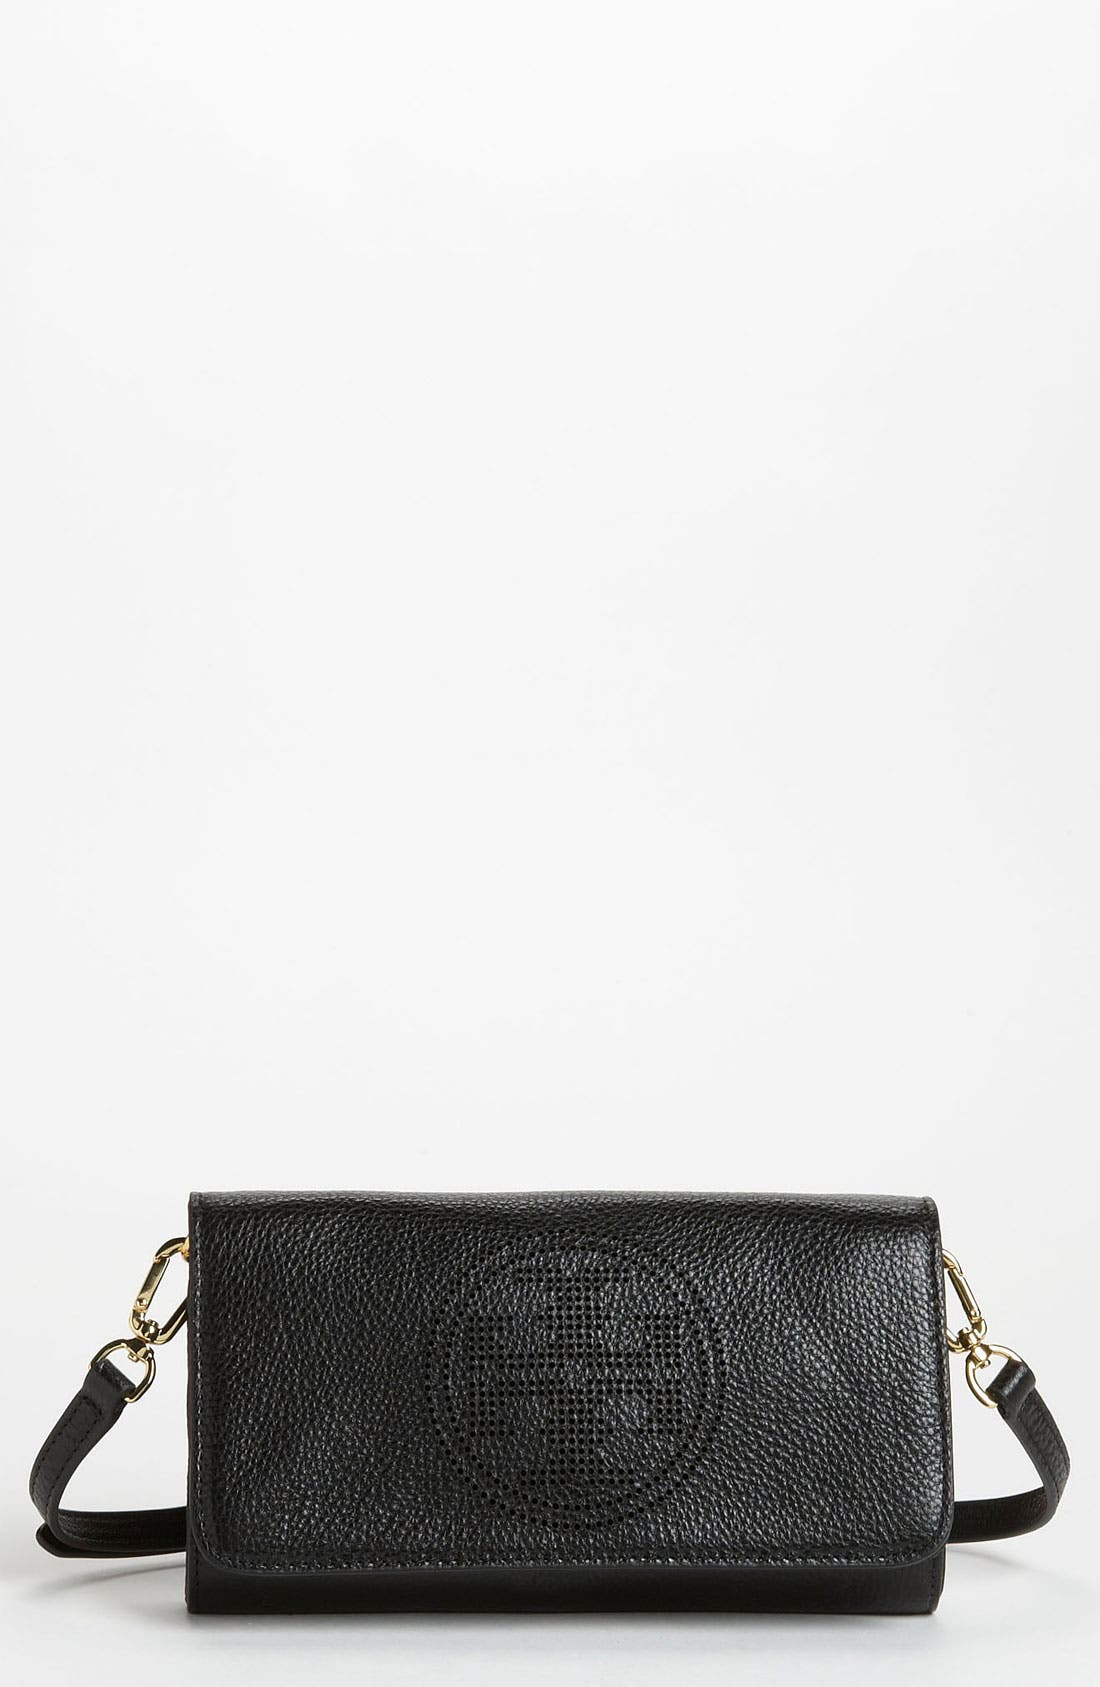 Alternate Image 1 Selected - Tory Burch 'Small' Perforated Logo Leather Clutch